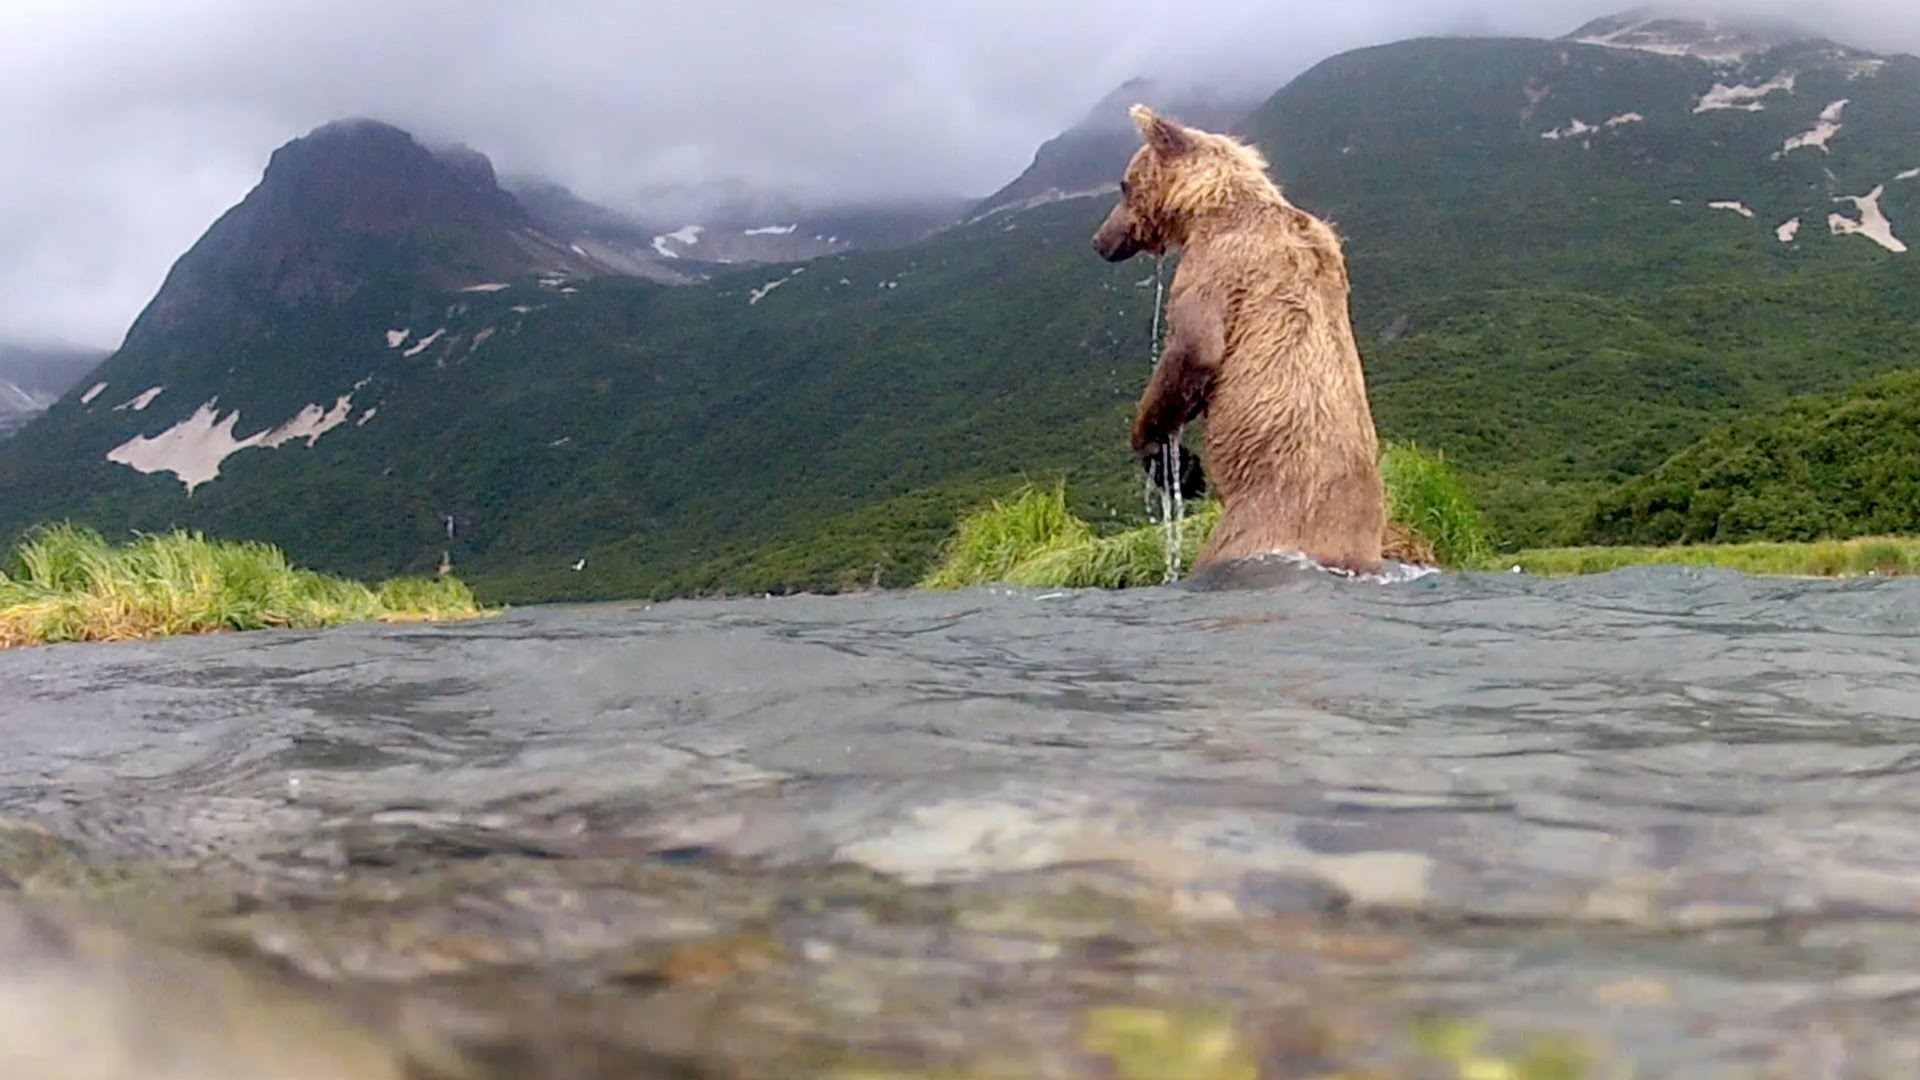 Remarkable Video of a Grizzly Bear Trying to Eat a GoPro Camera